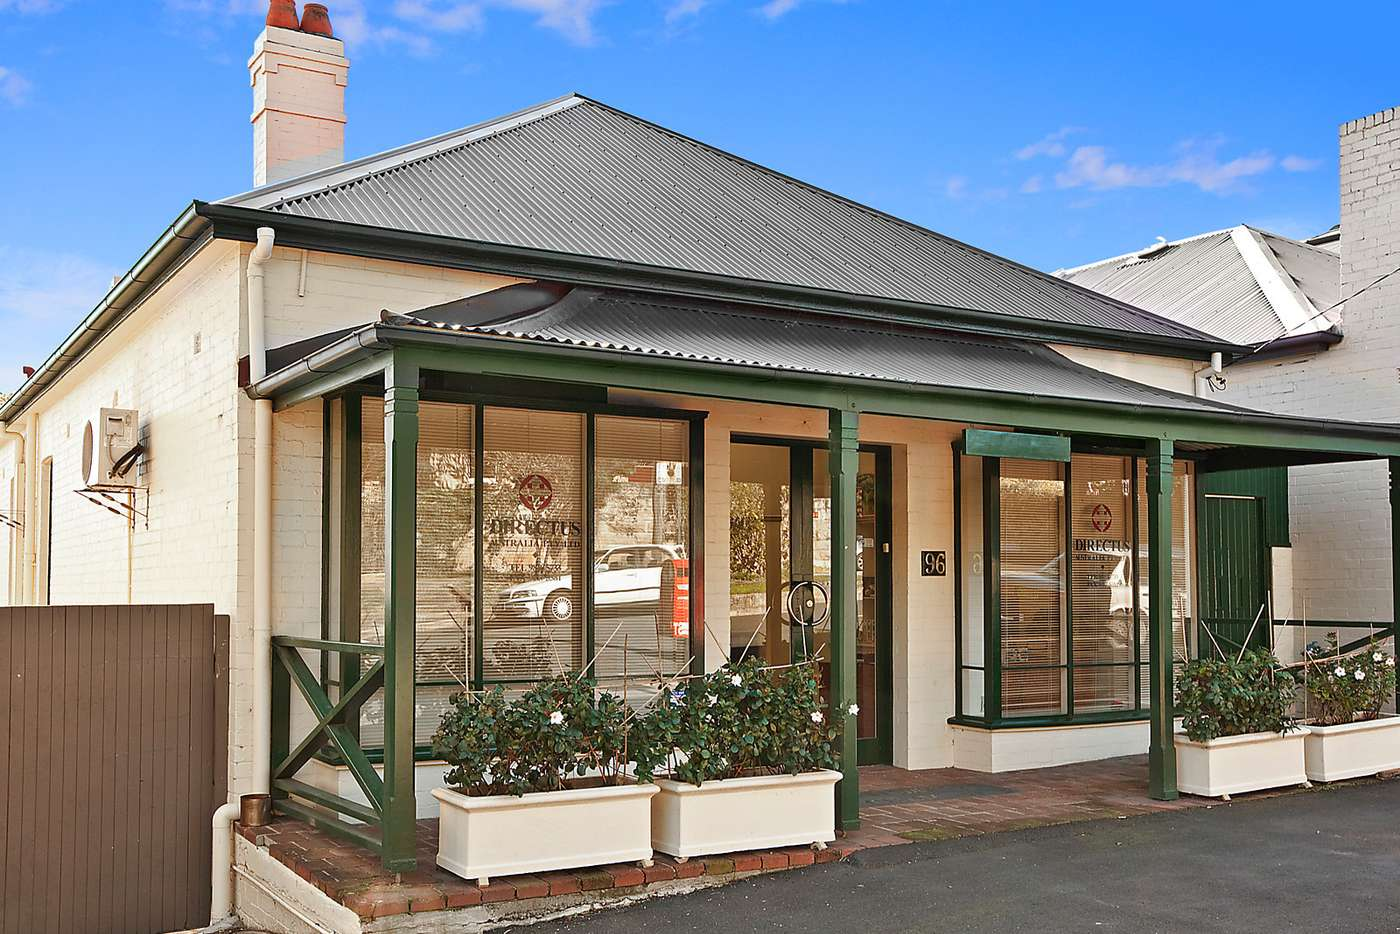 Main view of Homely house listing, 96 Woolwich Road, Hunters Hill NSW 2110